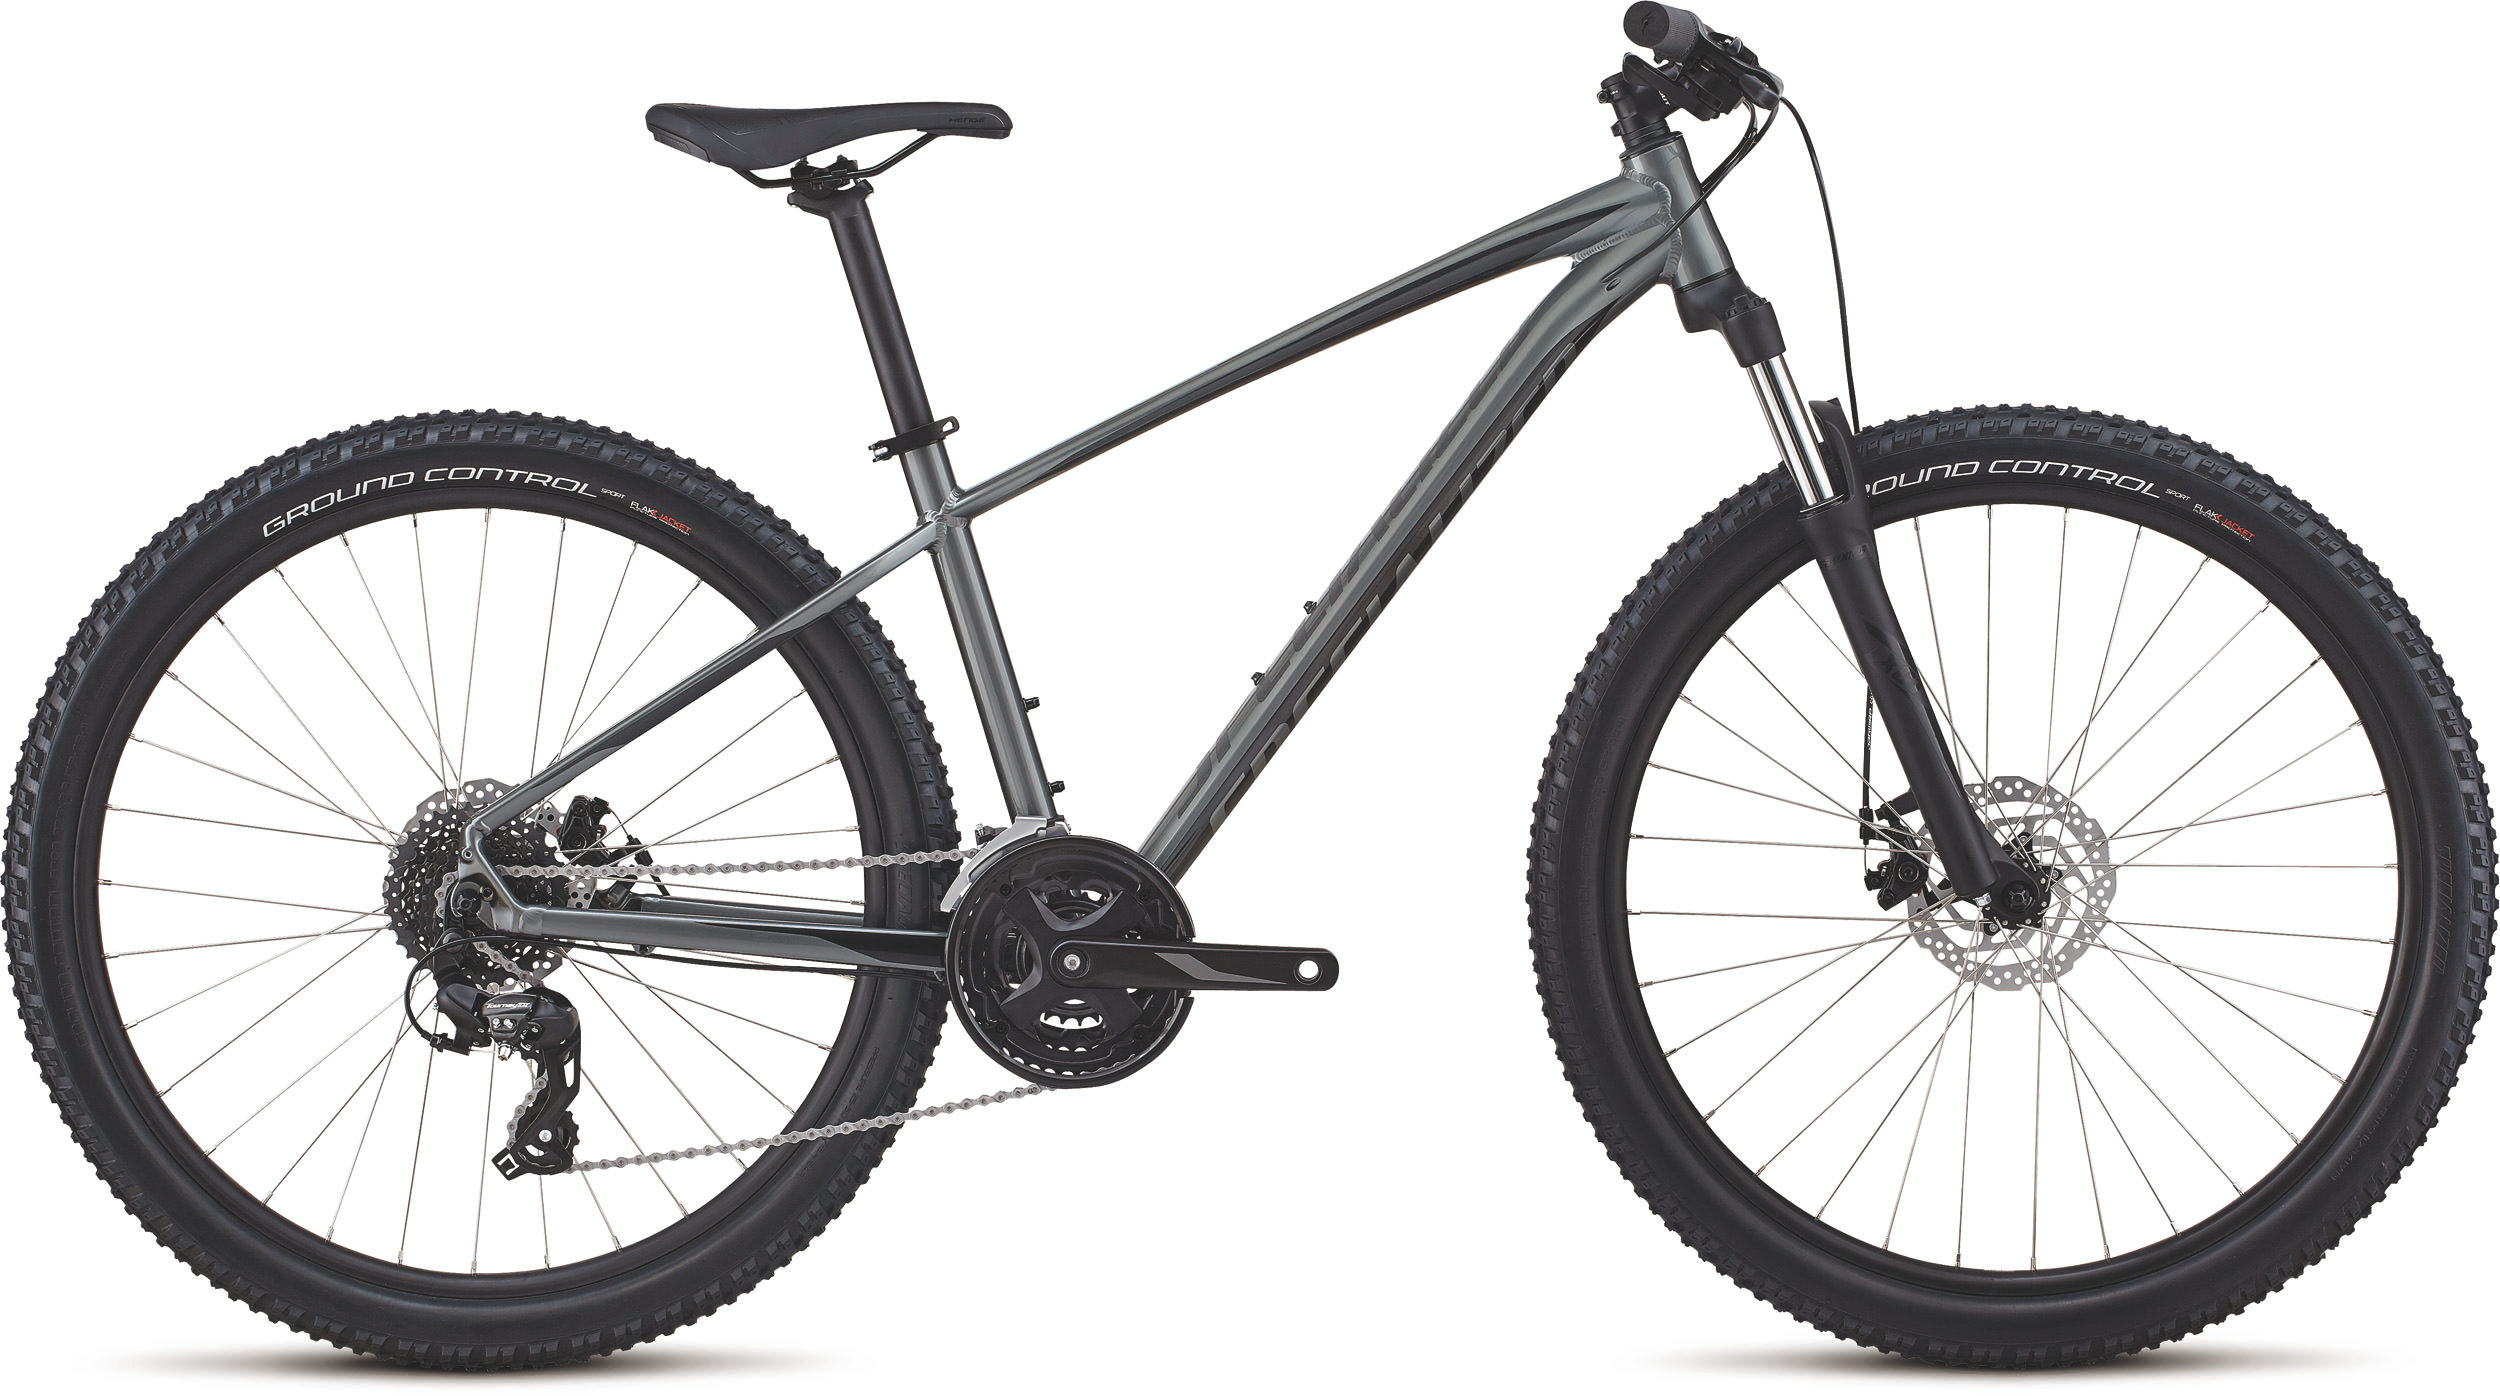 Specialized Men´s Pitch 27.5 SATIN CHARCOAL / BLACK XS - Specialized Men´s Pitch 27.5 SATIN CHARCOAL / BLACK XS